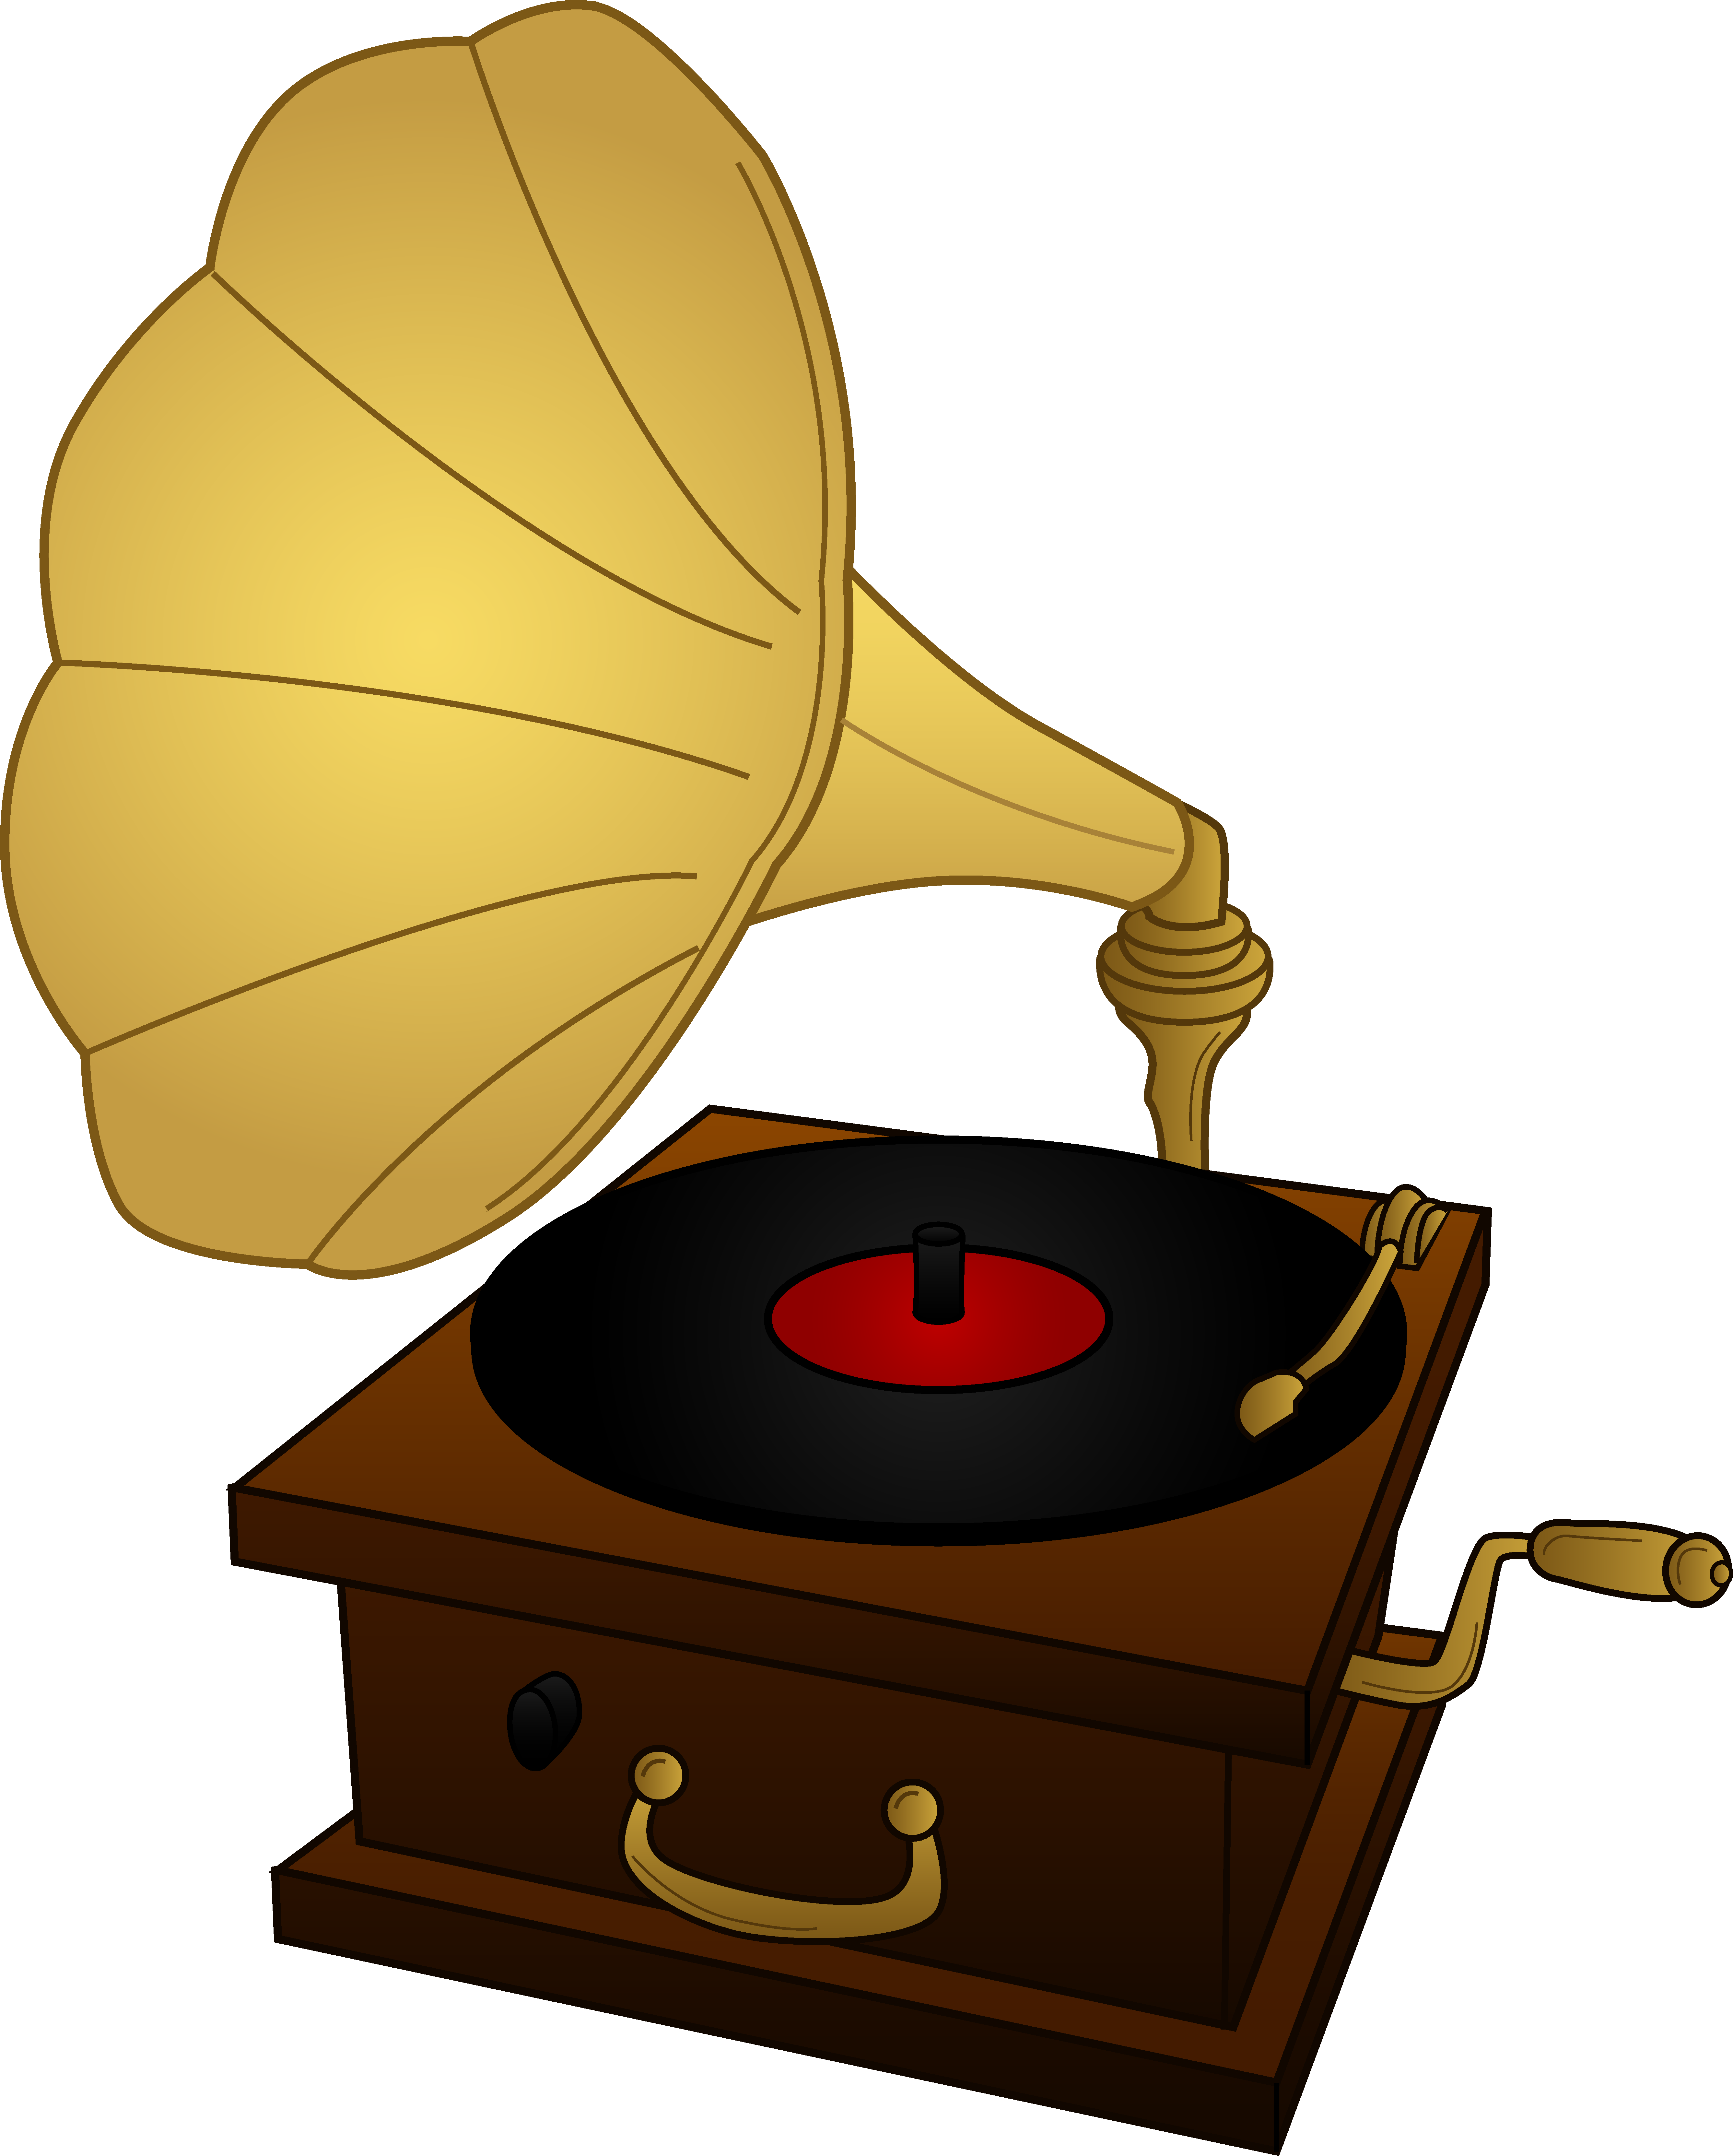 London clipart retro. Old record player drawing